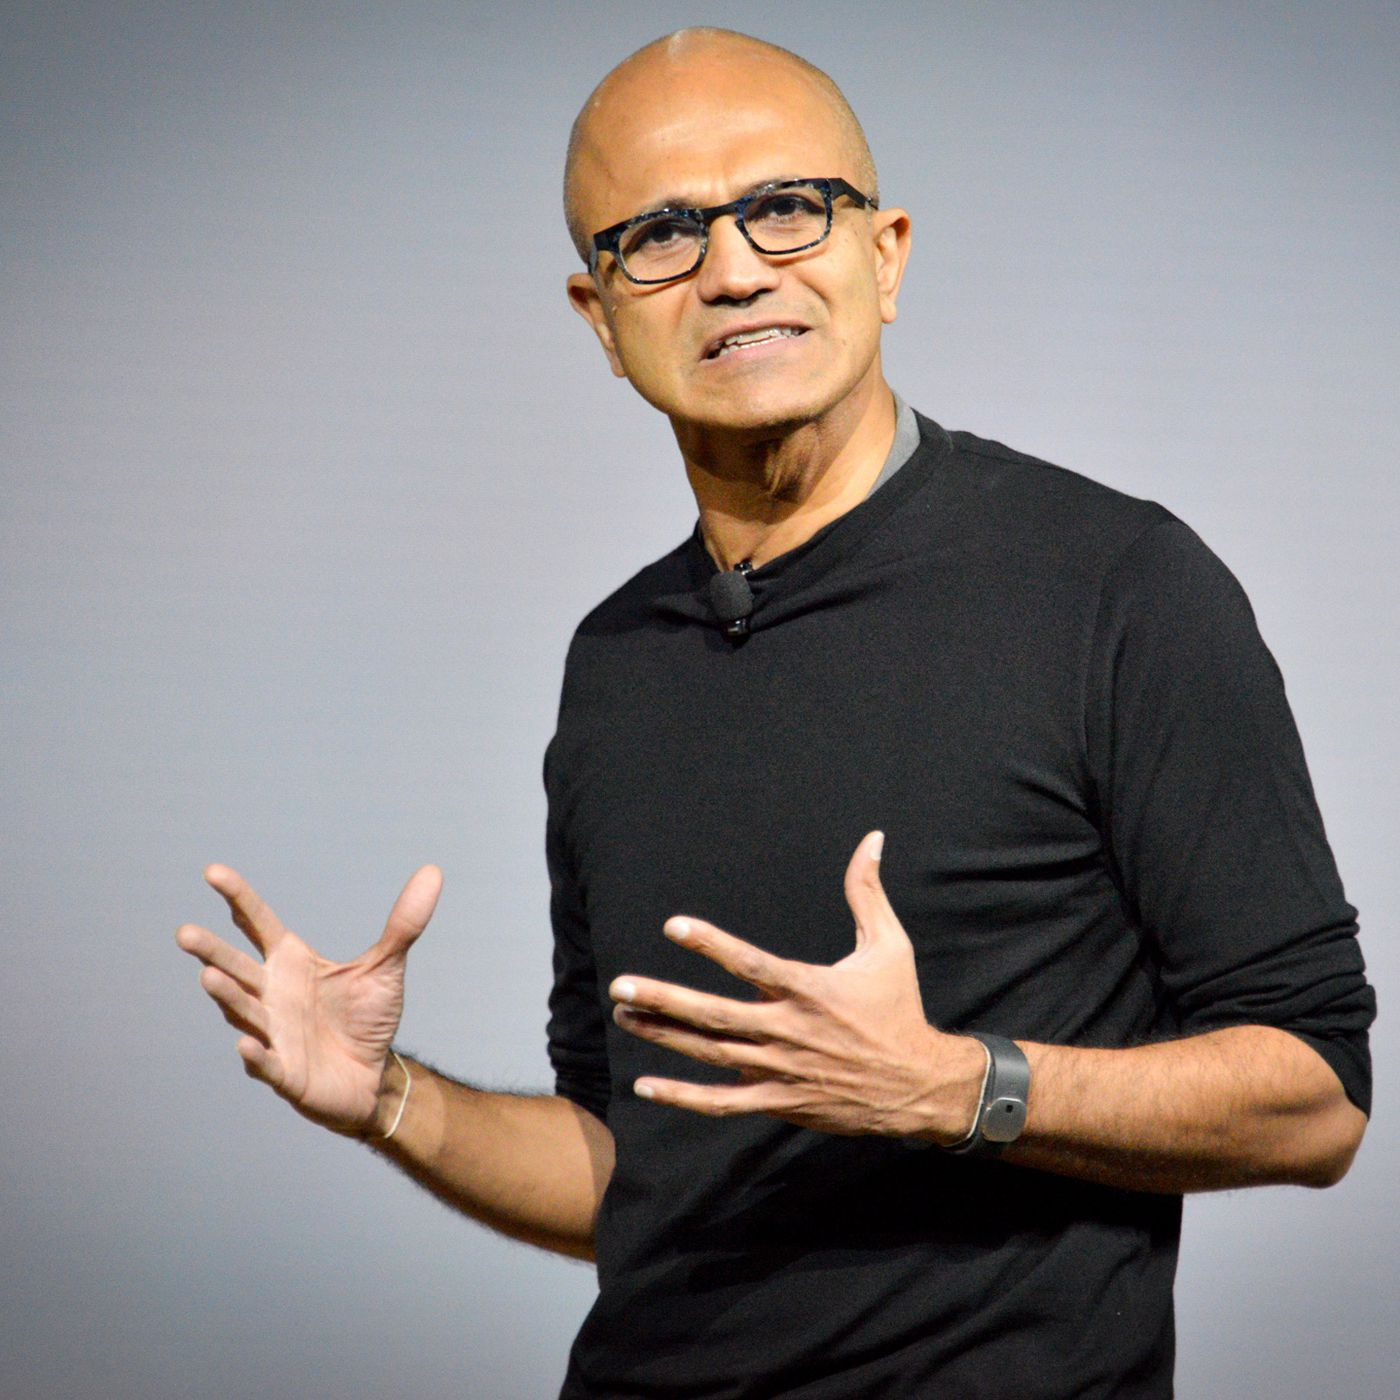 Microsoft CEO Satya Nadella sought out the silver lining in the election - The Verge